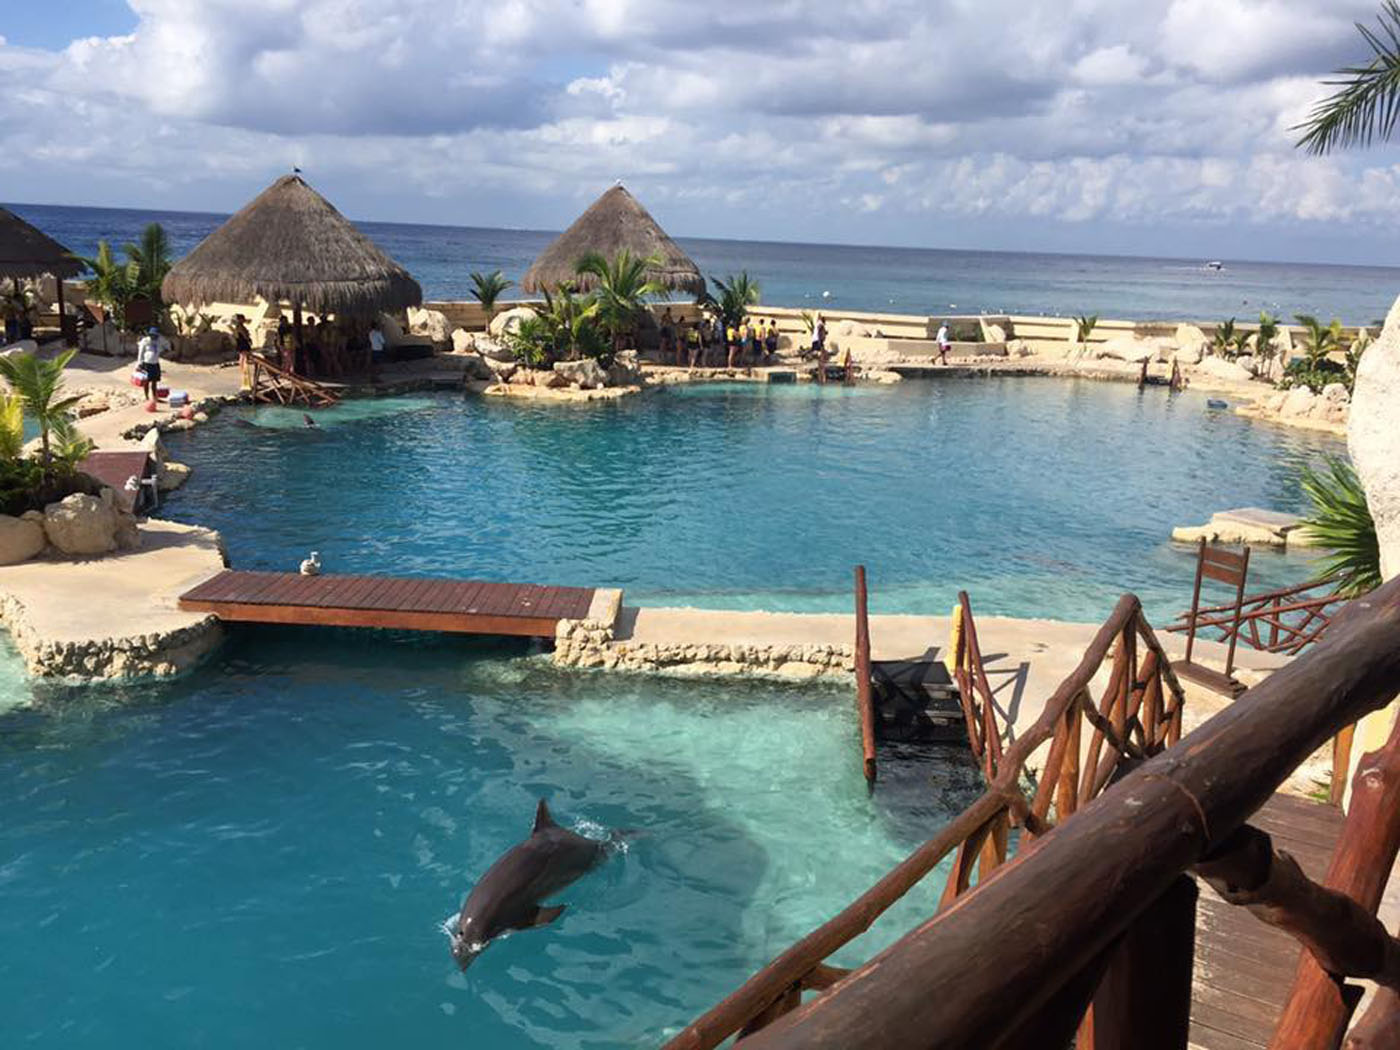 Learn more about the Port Adventures available in Cozumel, Mexico | PassPorter.com